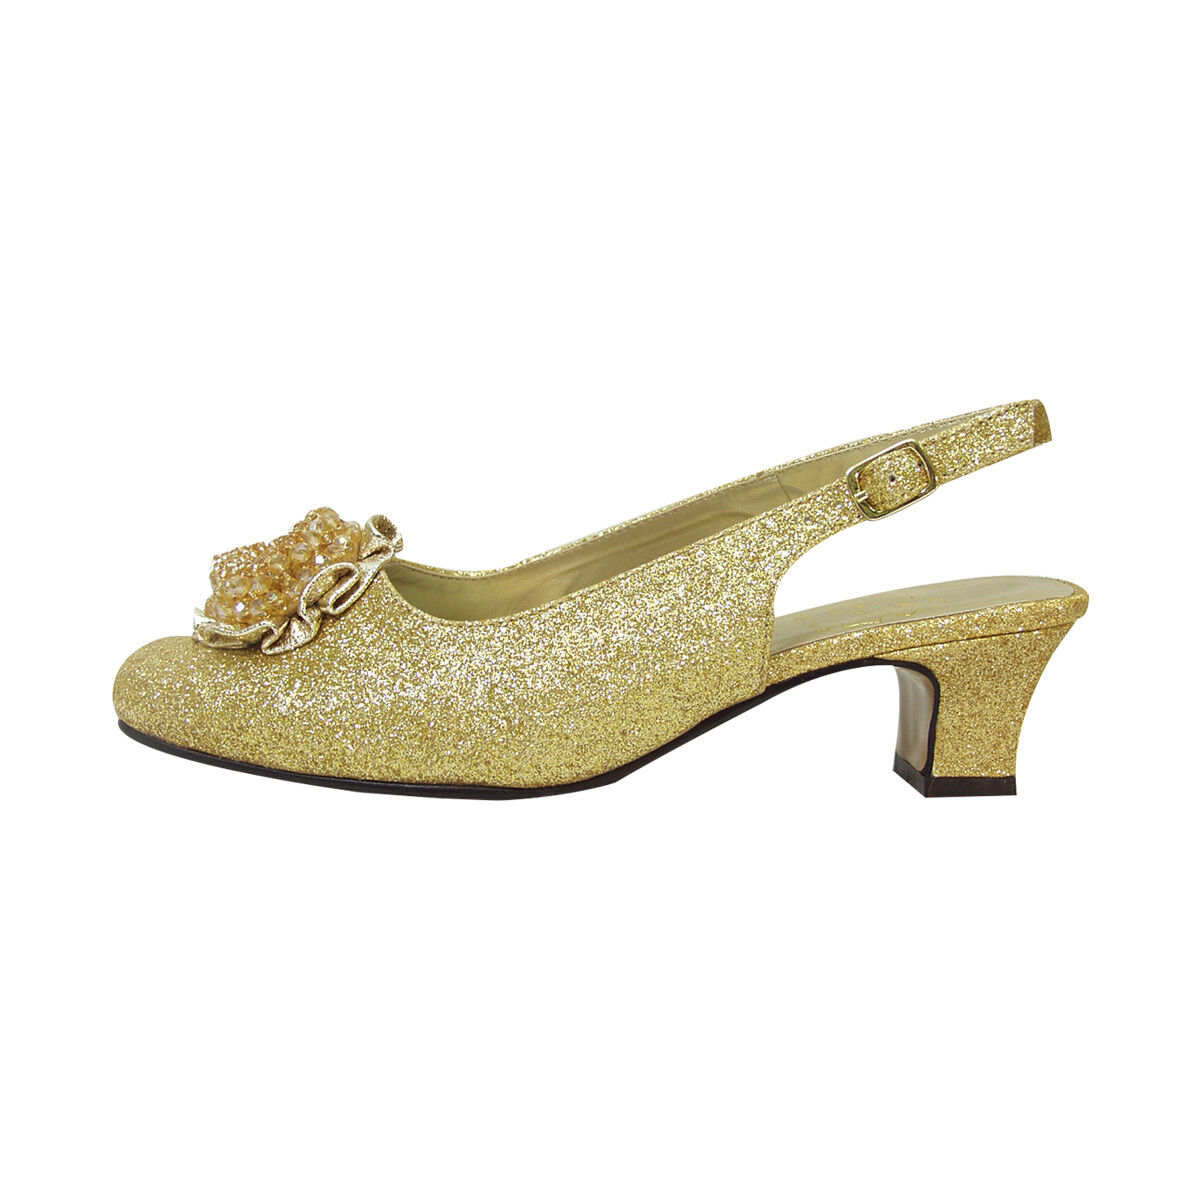 FIC with FLORAL Dara Damens Wide Width Dress Slingback with FIC Flower Bow for Evening b32e4a